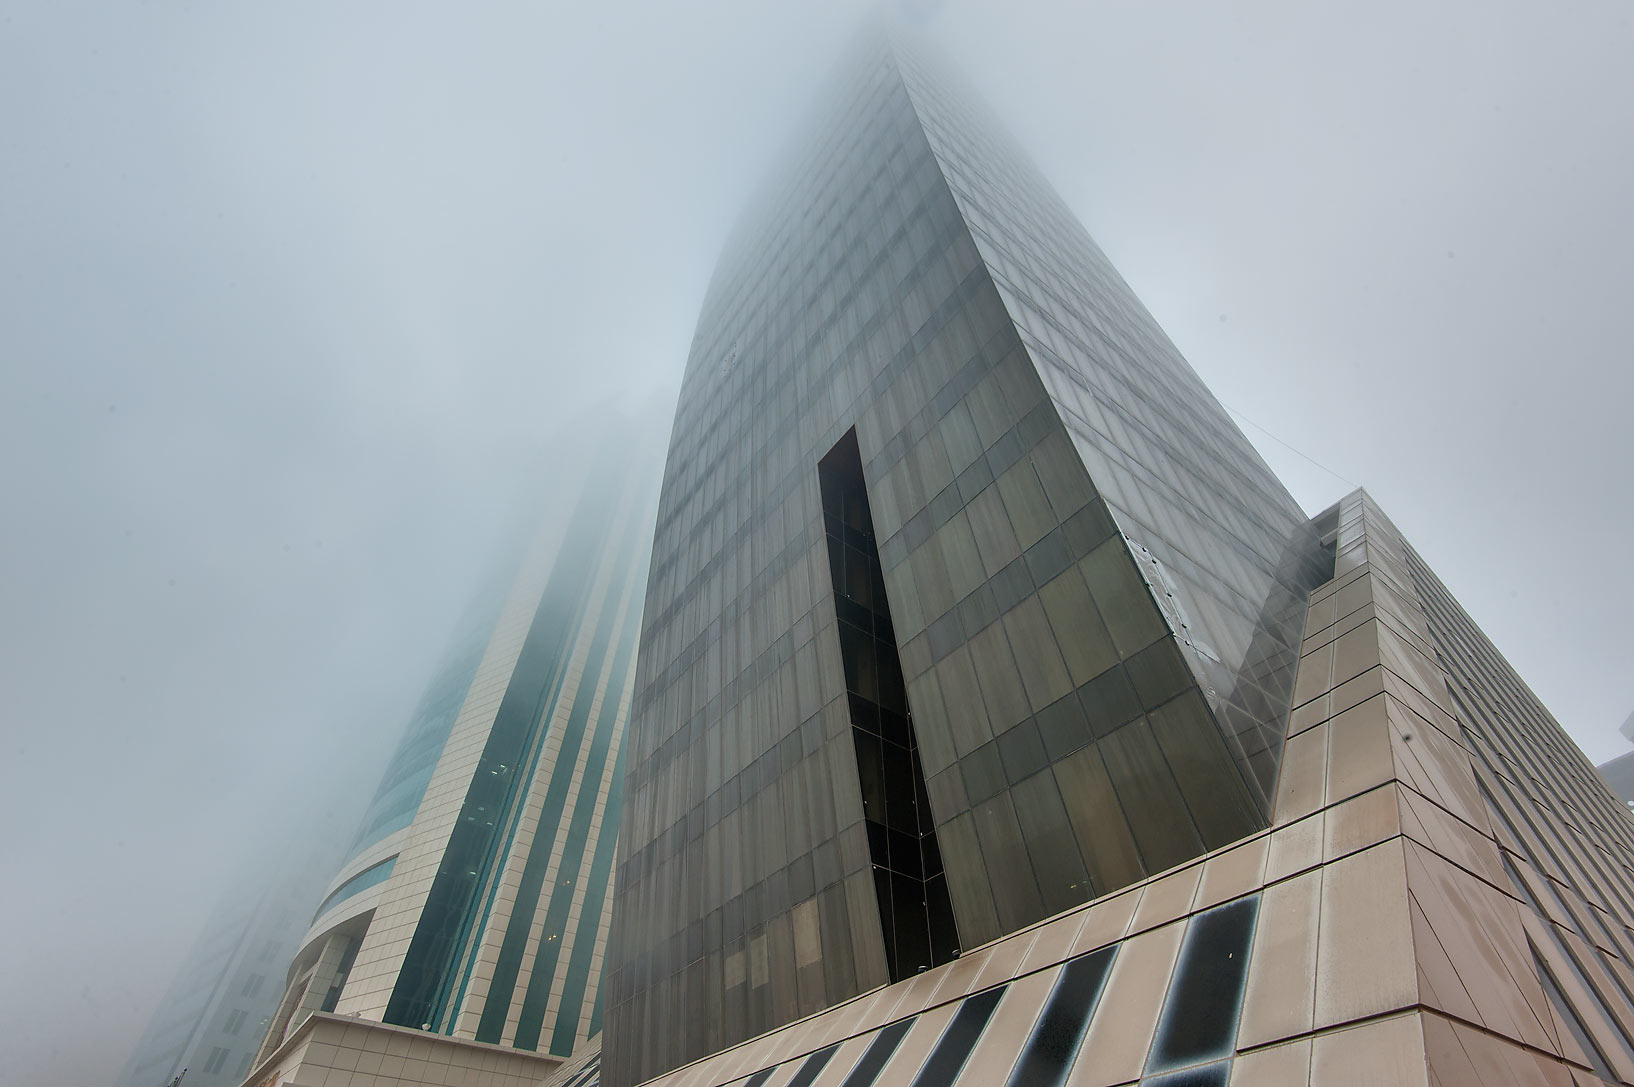 Abdulghani Commercial Tower in West Bay in fog. Doha, Qatar